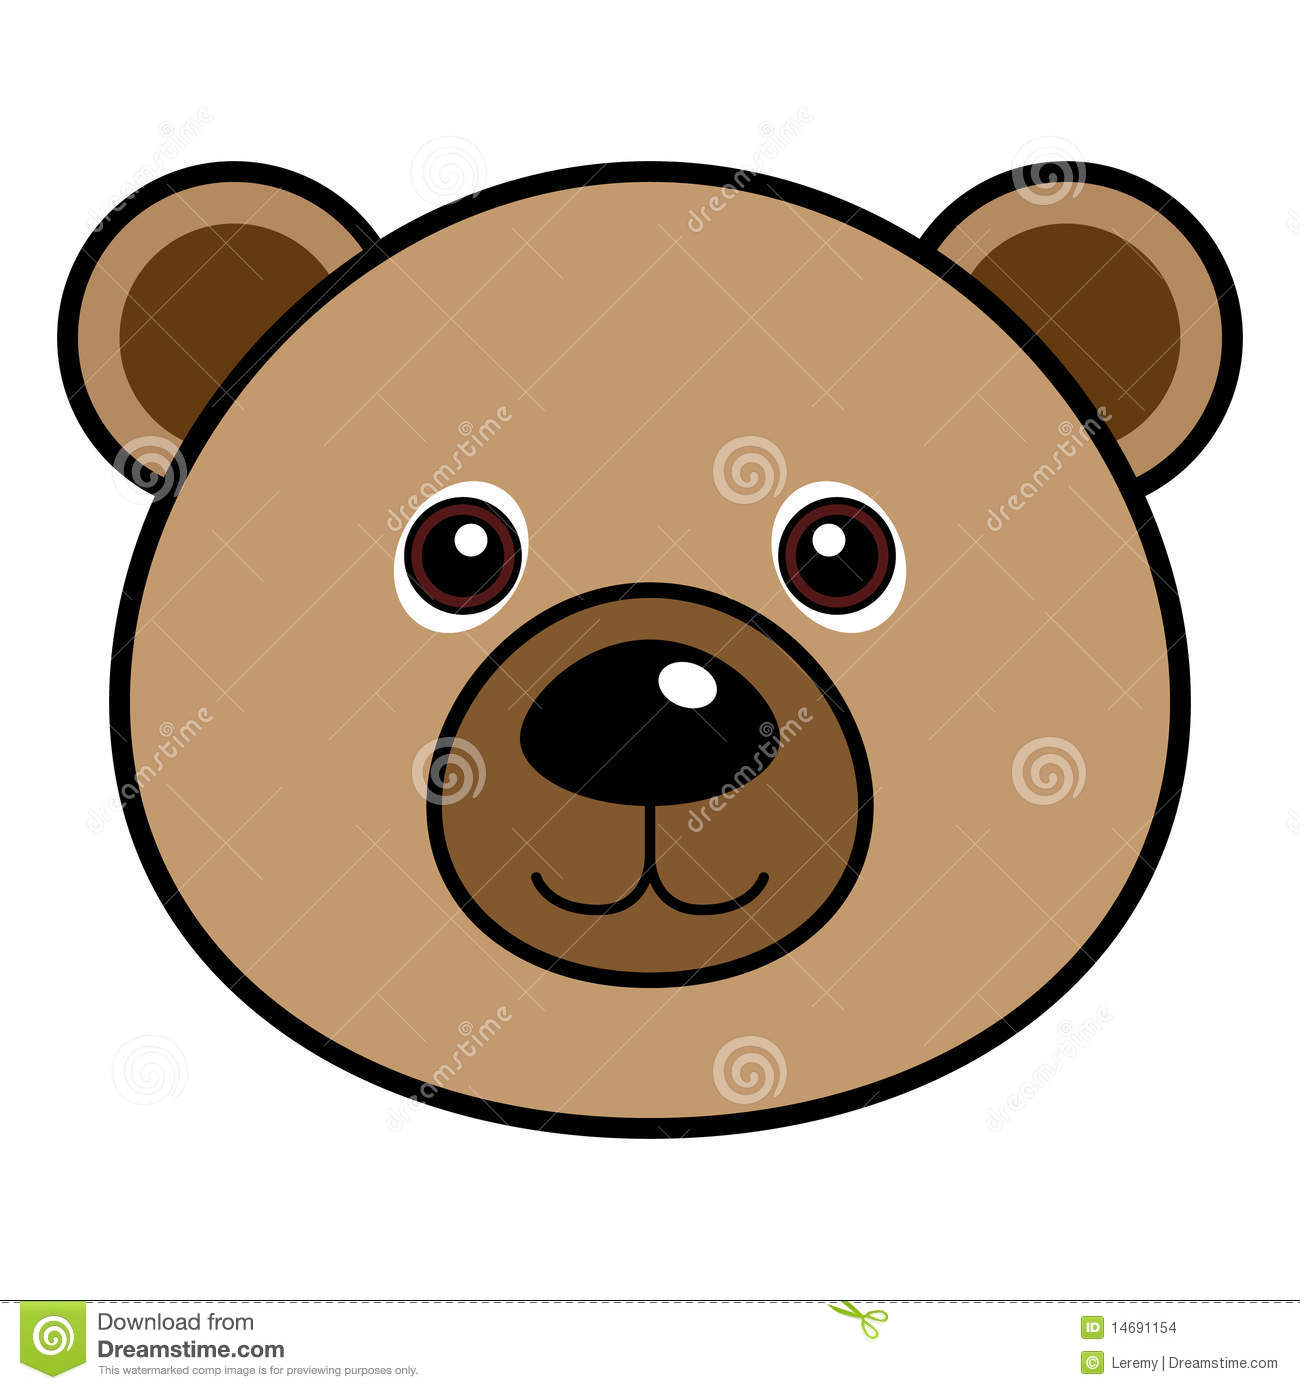 Cute Bear Vector Stock Images - Image: 14691154